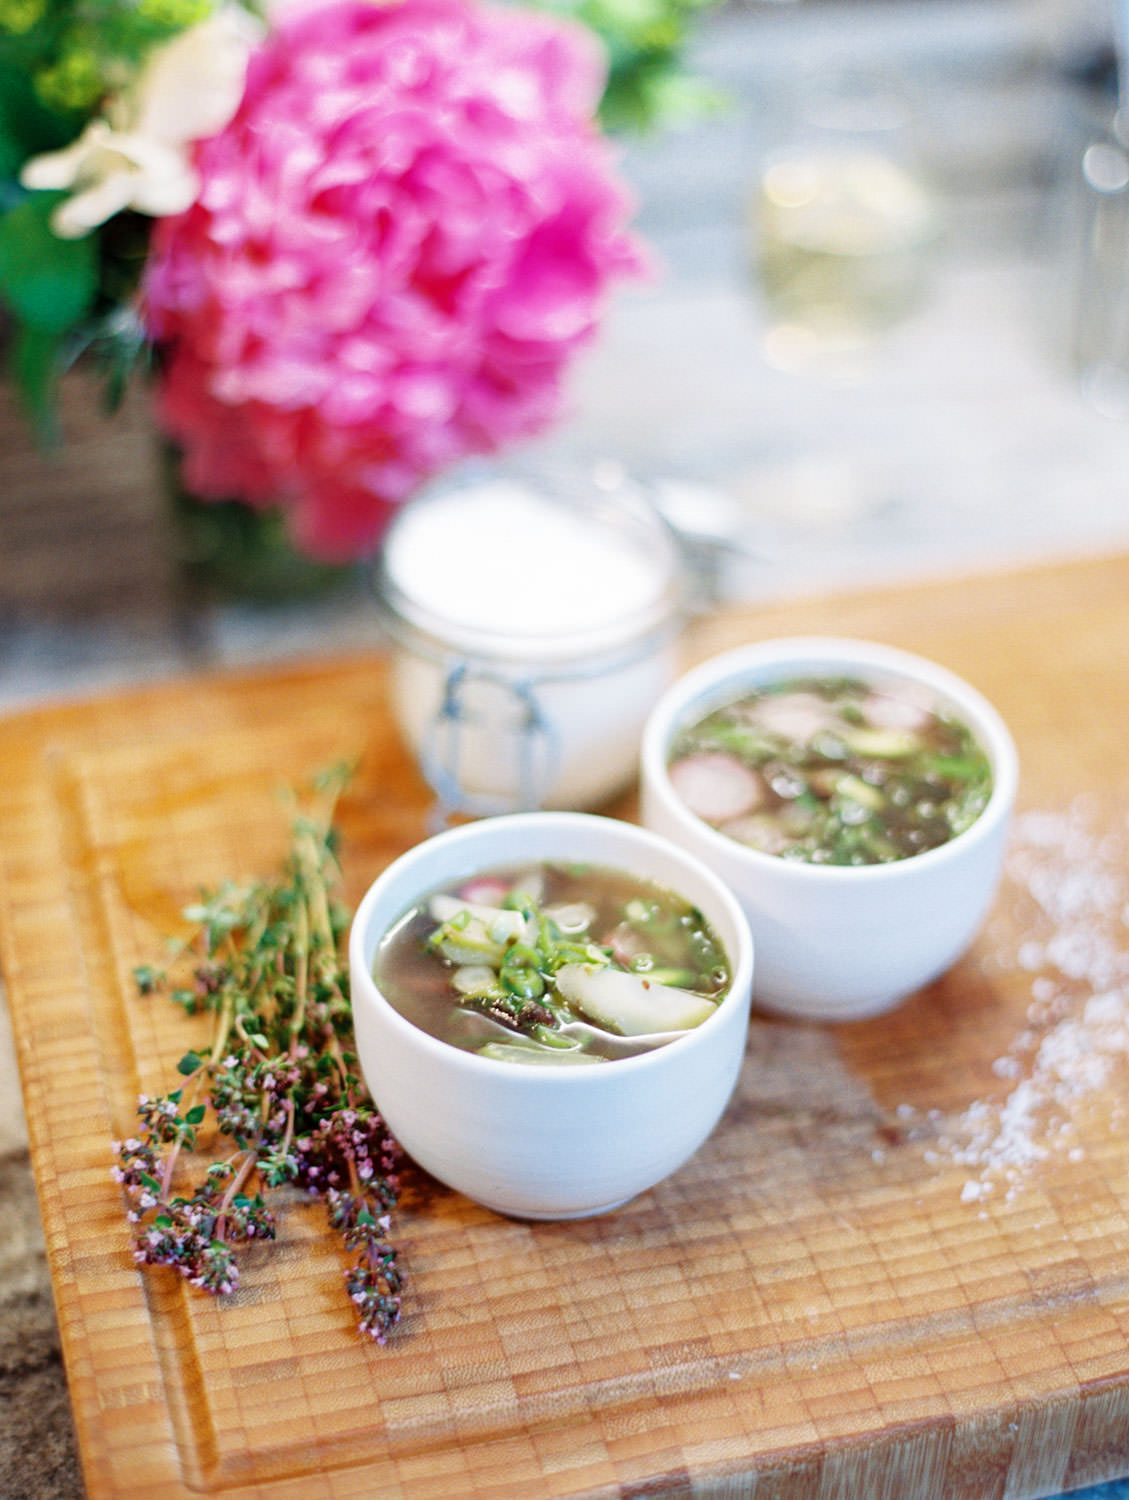 Daylesford Farm vegetable soup styled with fresh thyme. Flutter Magazine Retreat in the Cotswolds, England. Photo by Cavin Elizabeth Photography on film